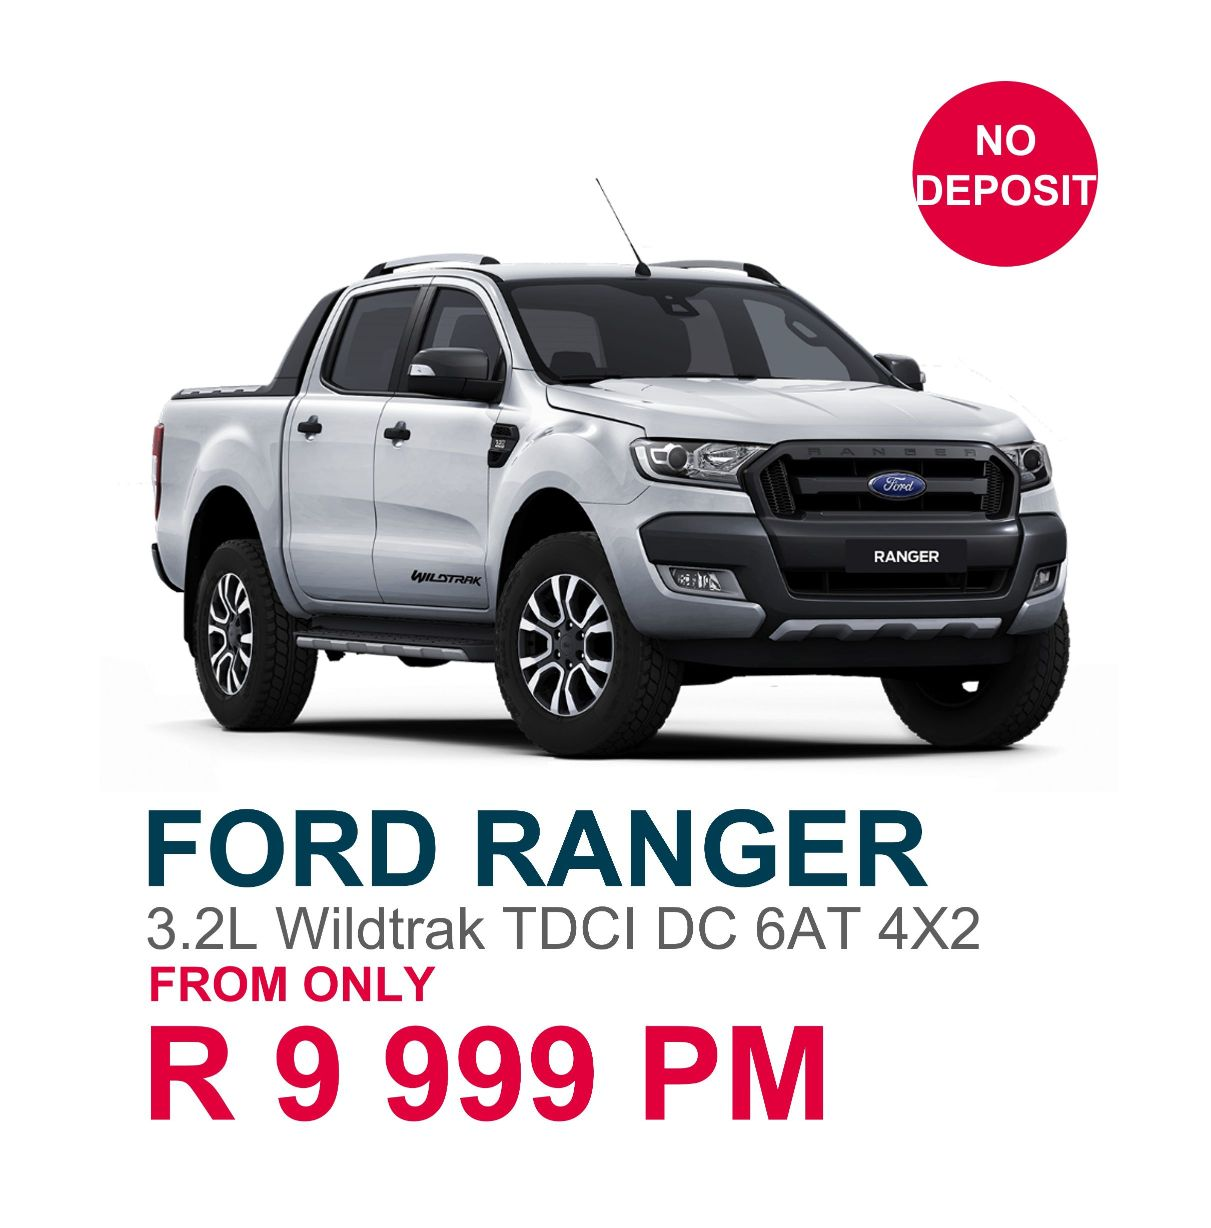 ford-ranger-wildtrak-from-only-r9-999pm